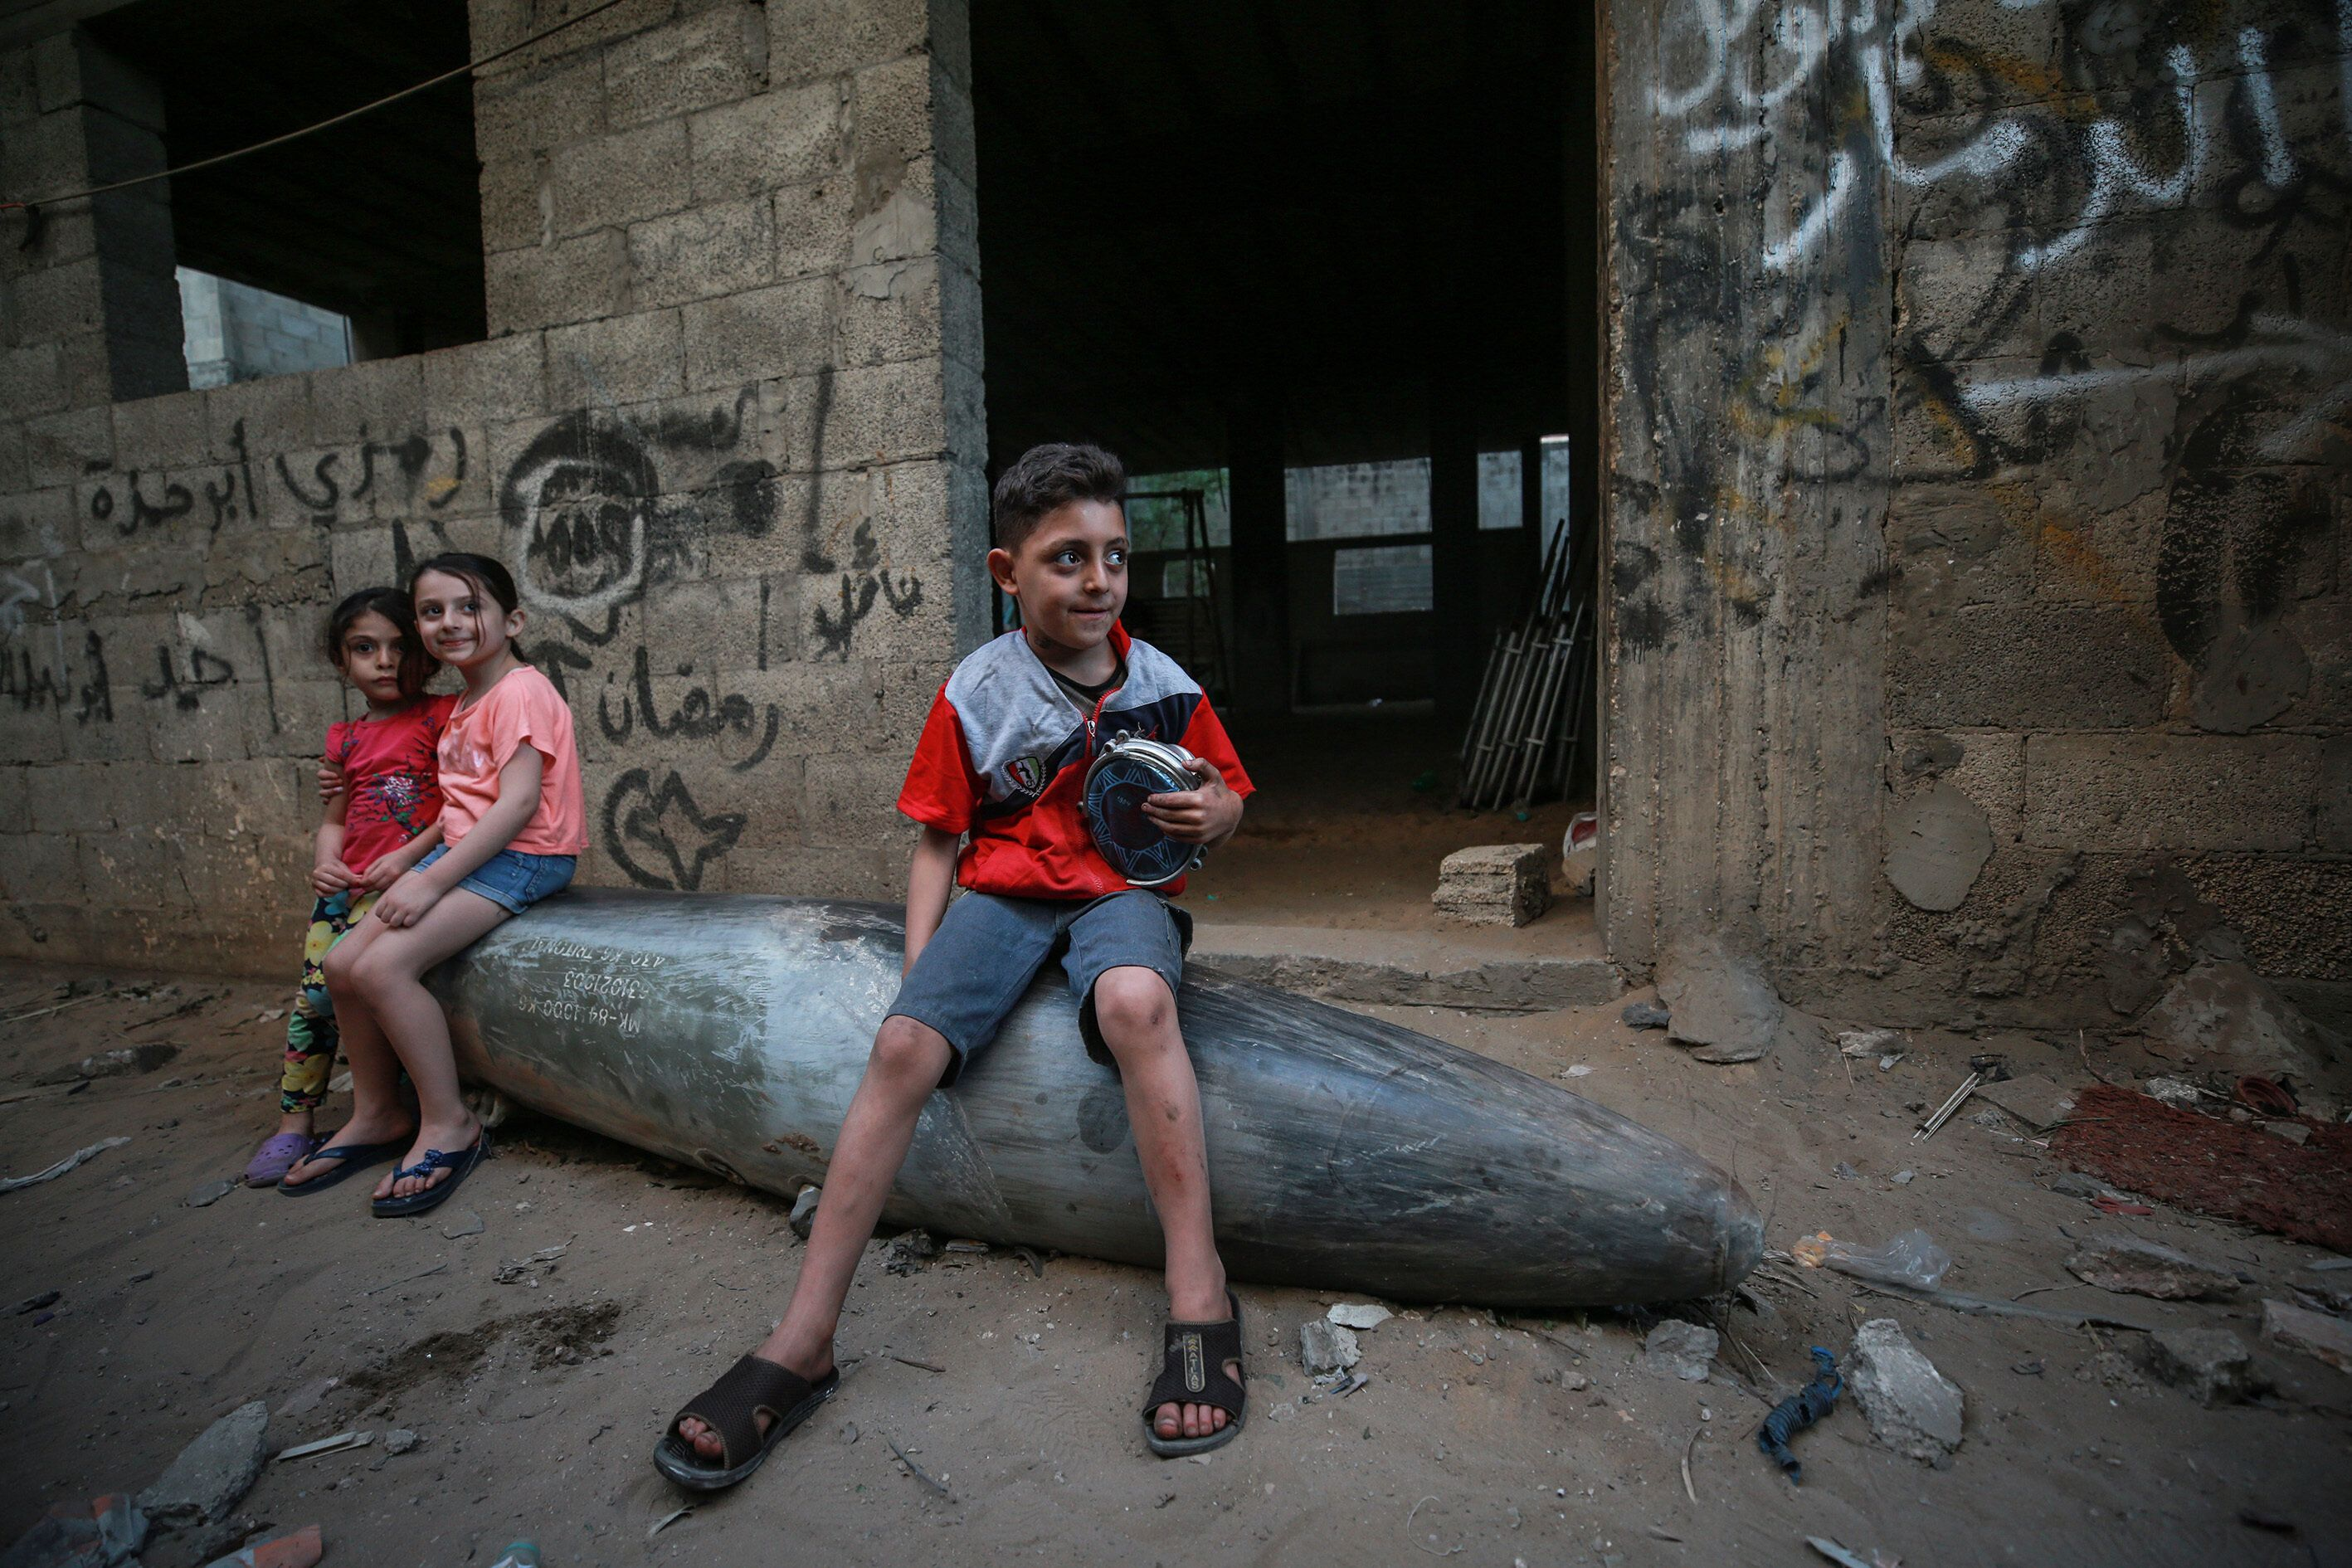 Palestinian children sit on an unexploded missile from an Israeli warplane Tuesday in the al-Rimal neighborhood of Gaza City,